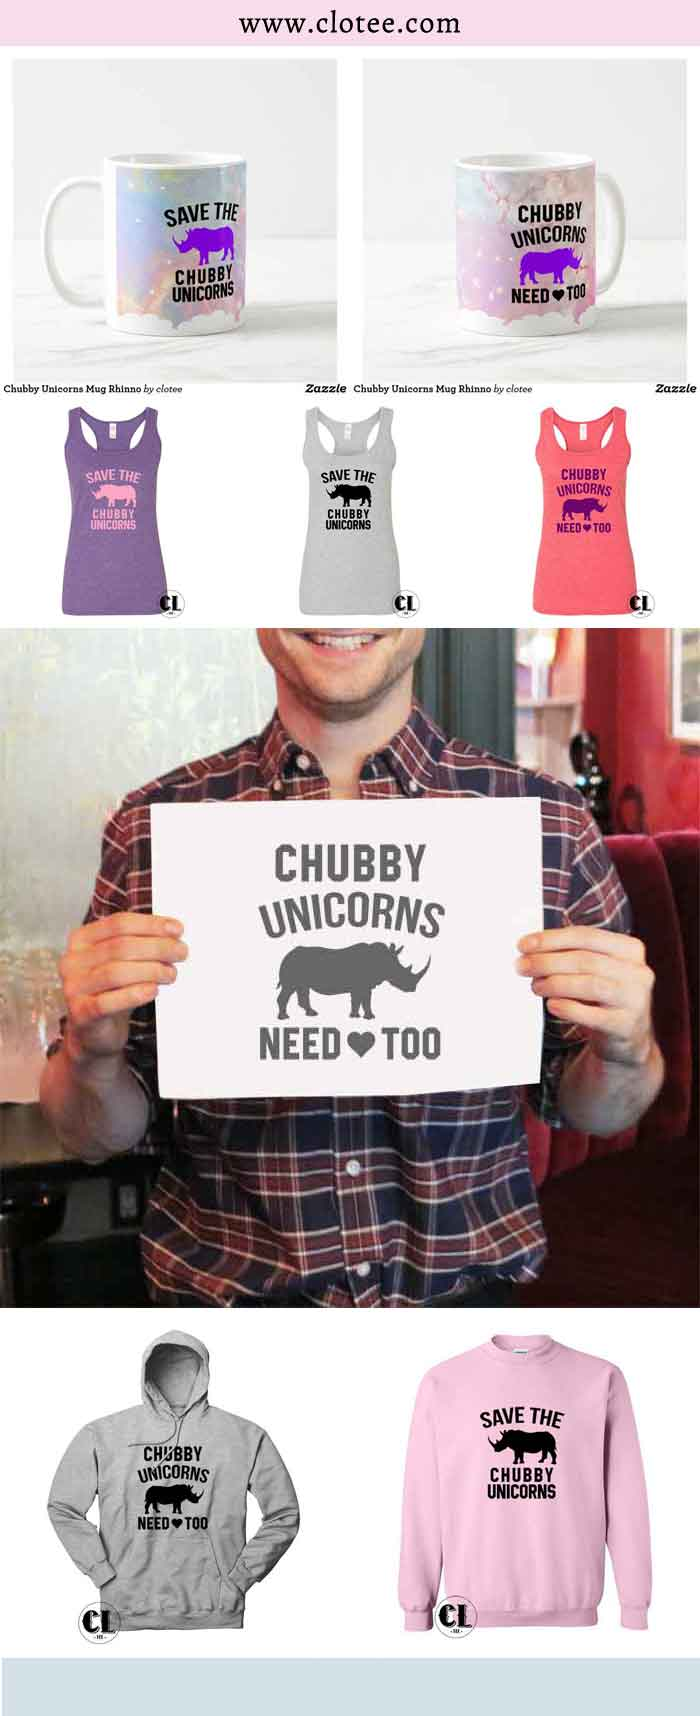 pinterest chubby unicorns